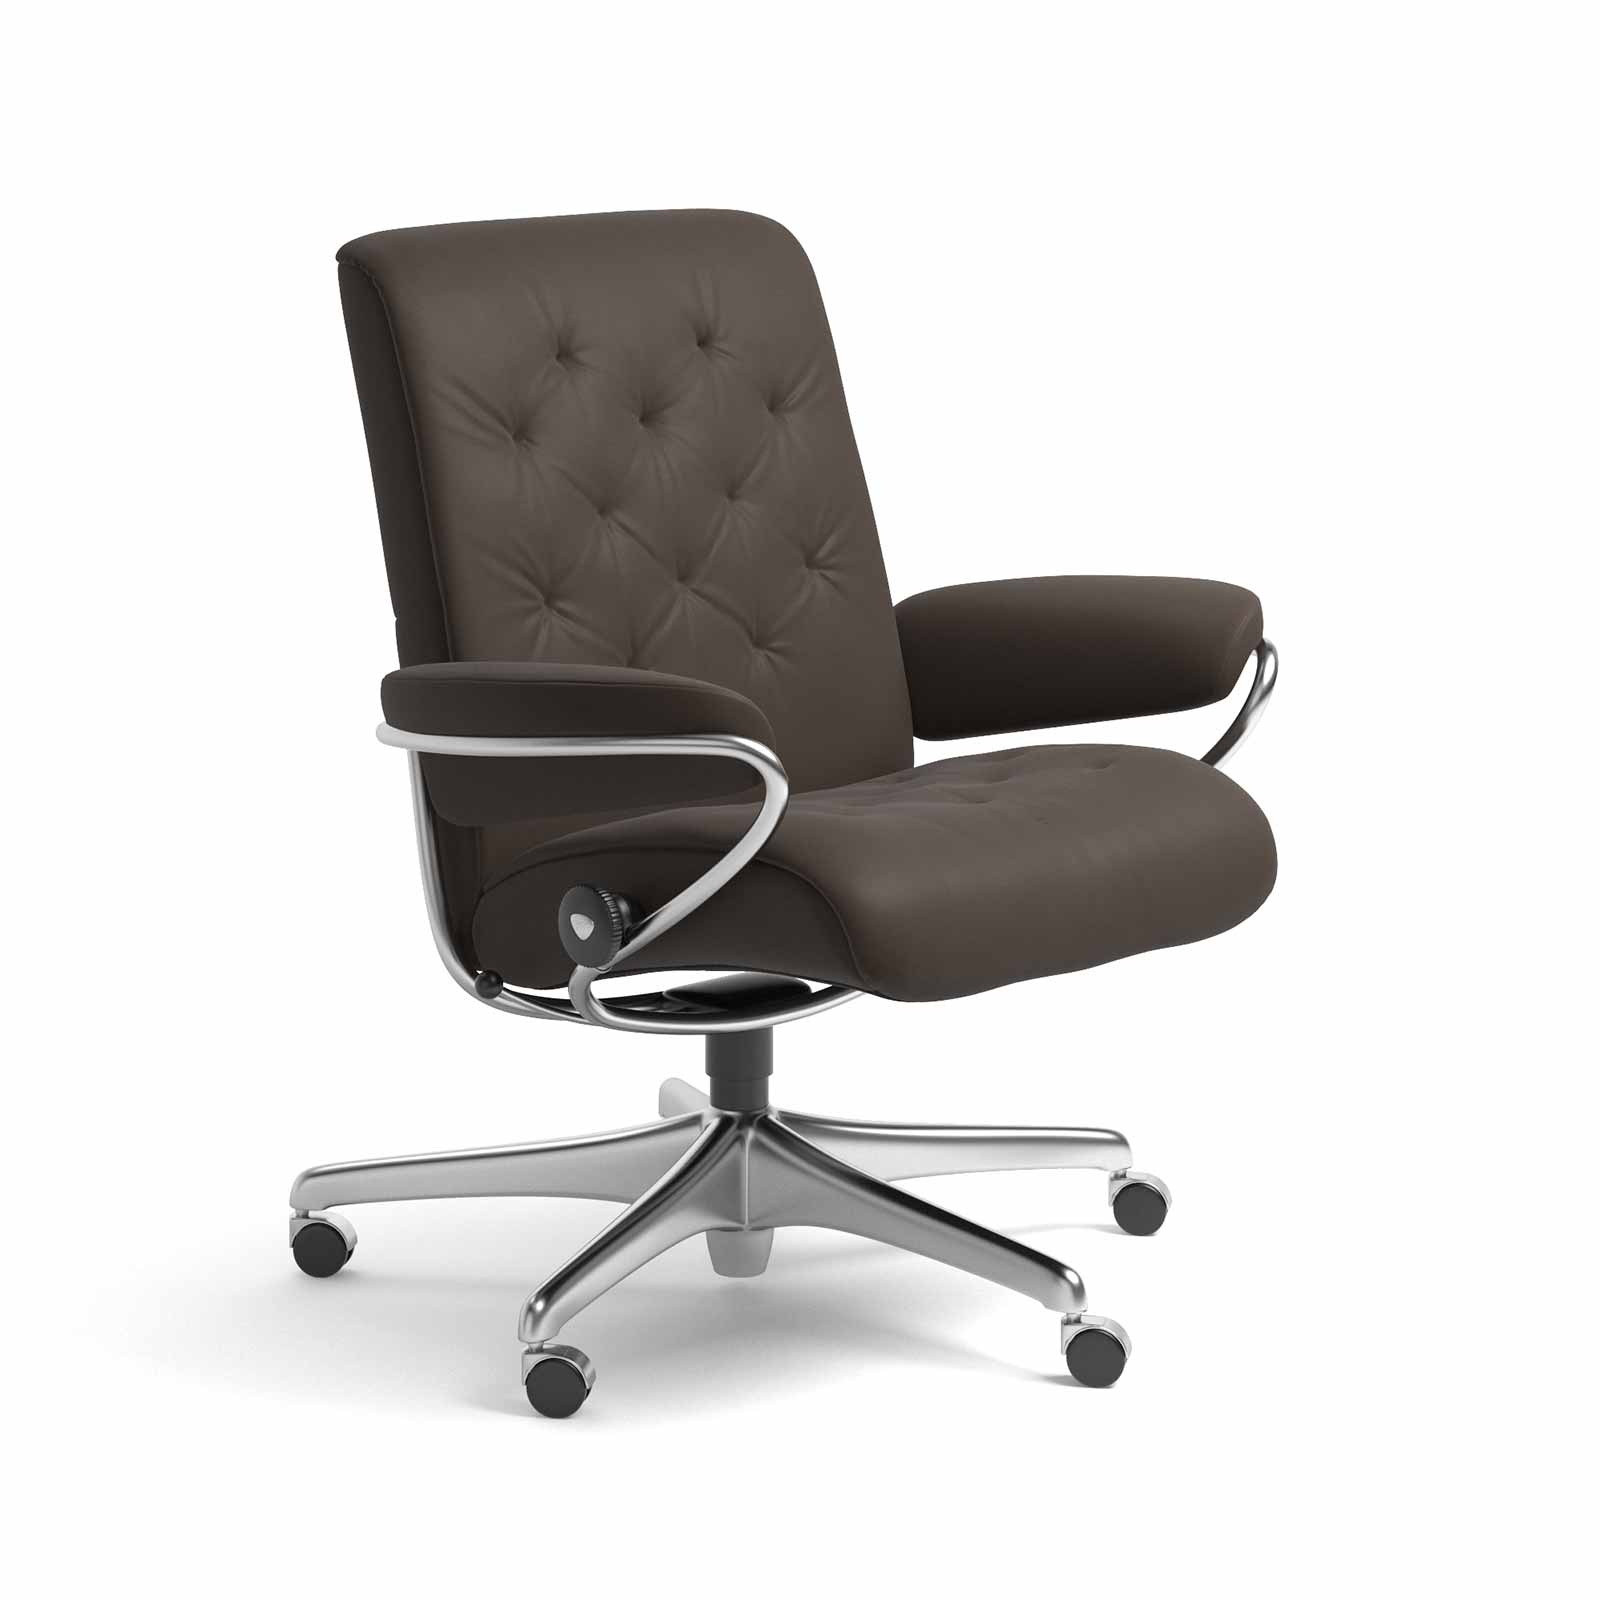 Stressless Sessel Montage Stressless Sessel Metro Home Office Low Back Leder Batick Braun